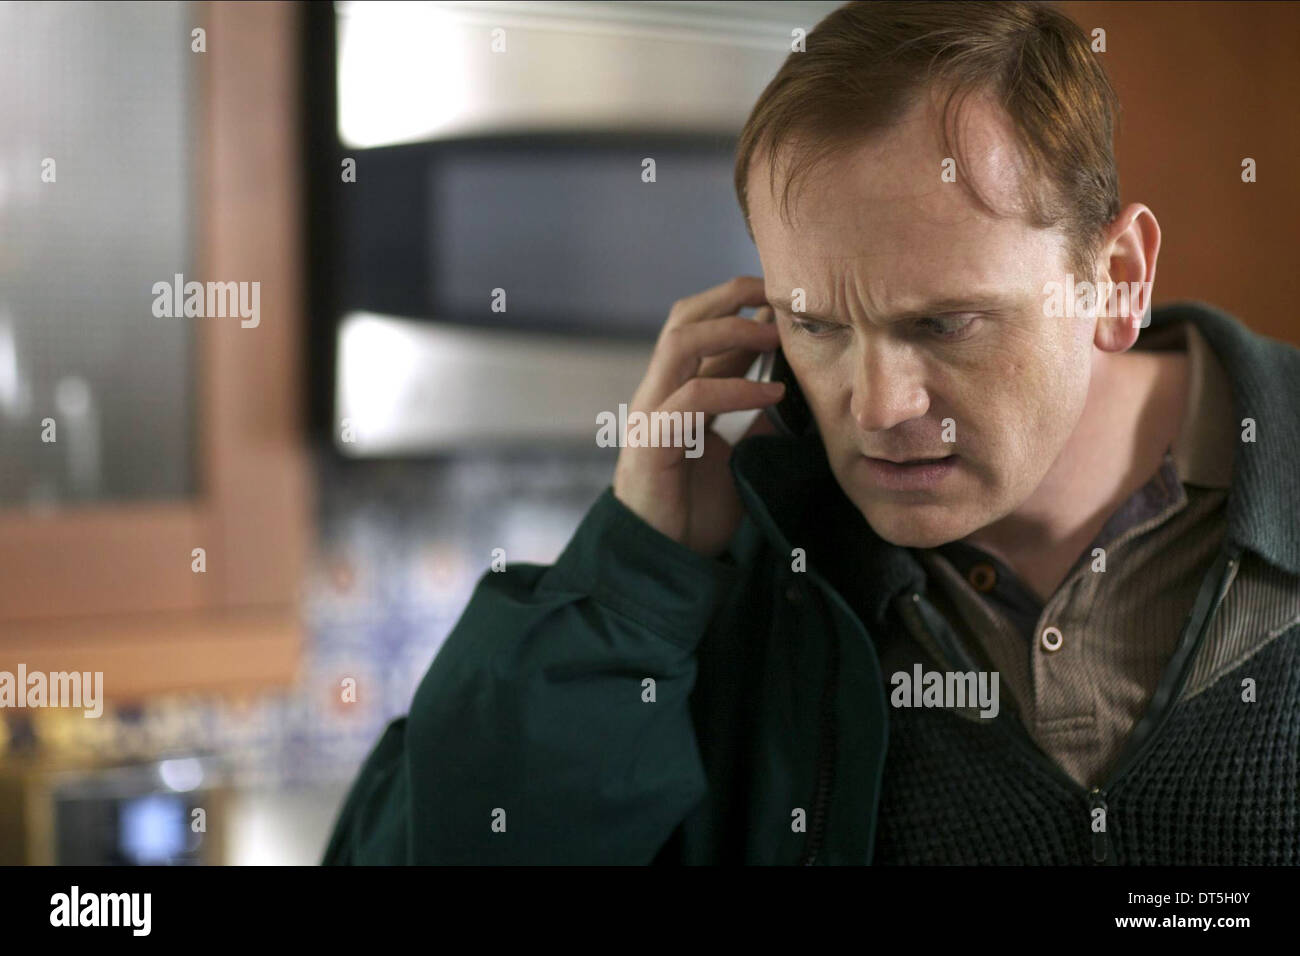 PAT HEALY COMPLIANCE (2012) - Stock Image